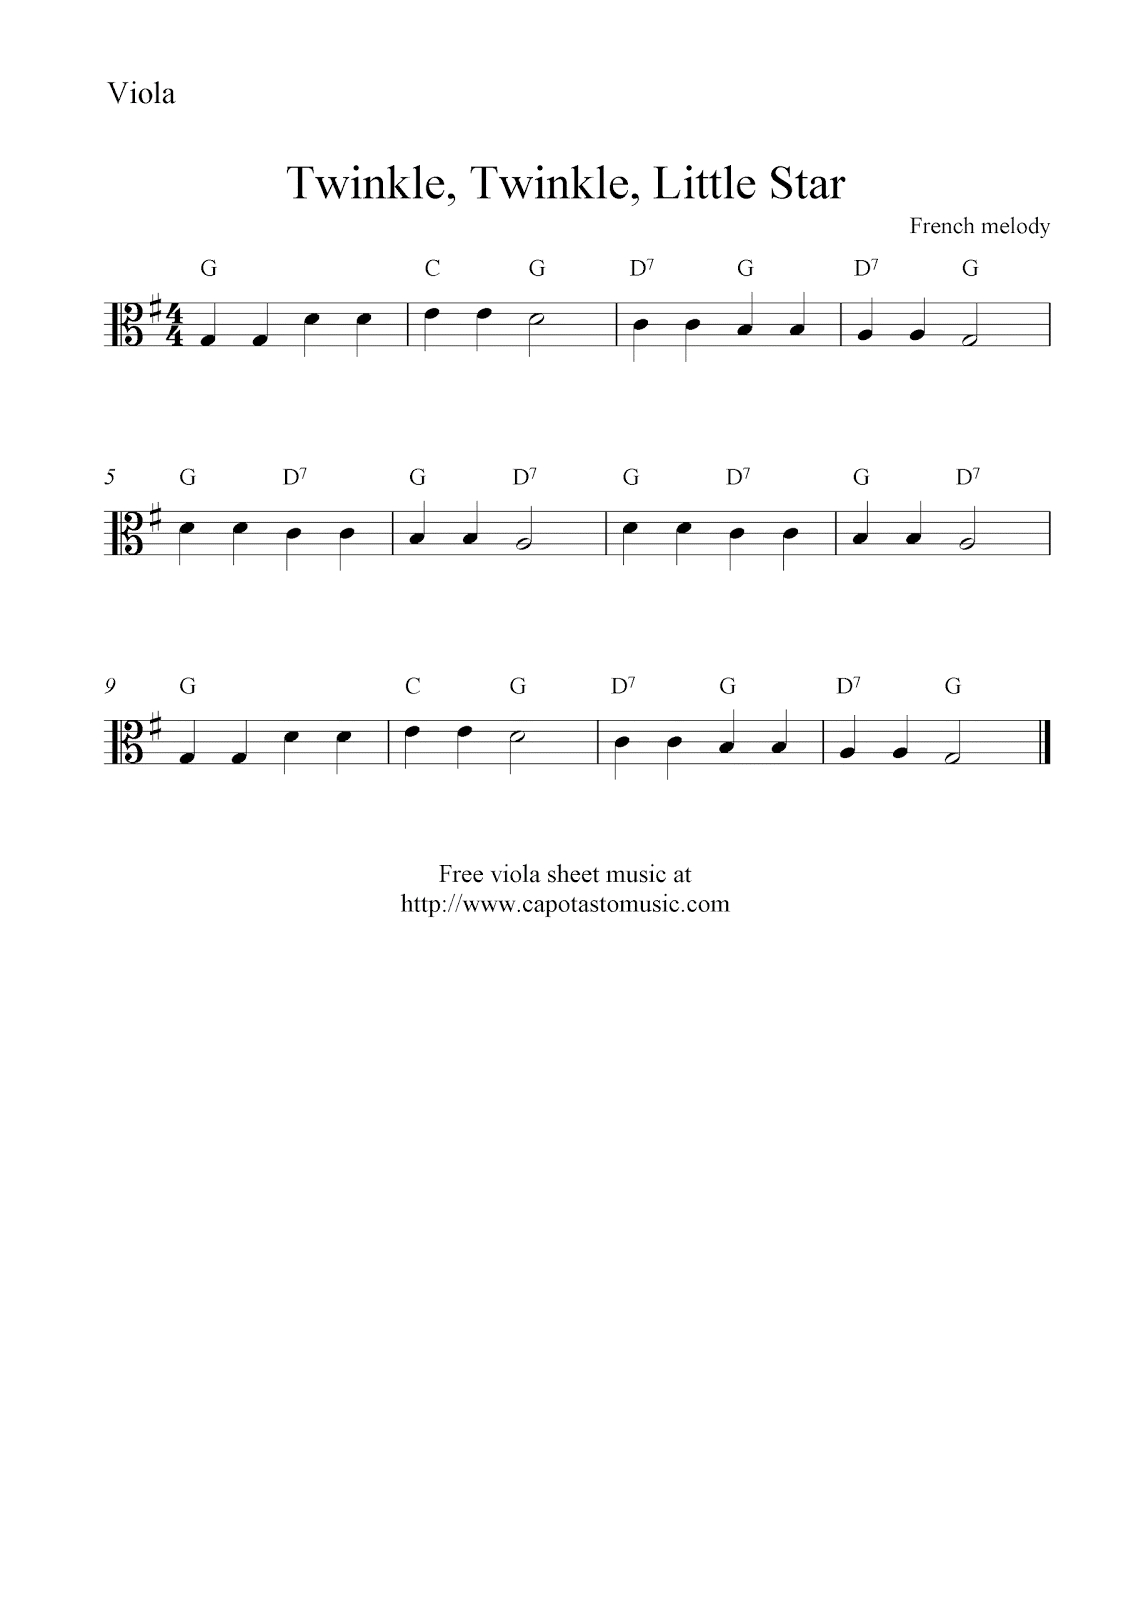 Free Viola Sheet Music, Twinkle, Twinkle, Little Star - Viola Sheet Music Free Printable